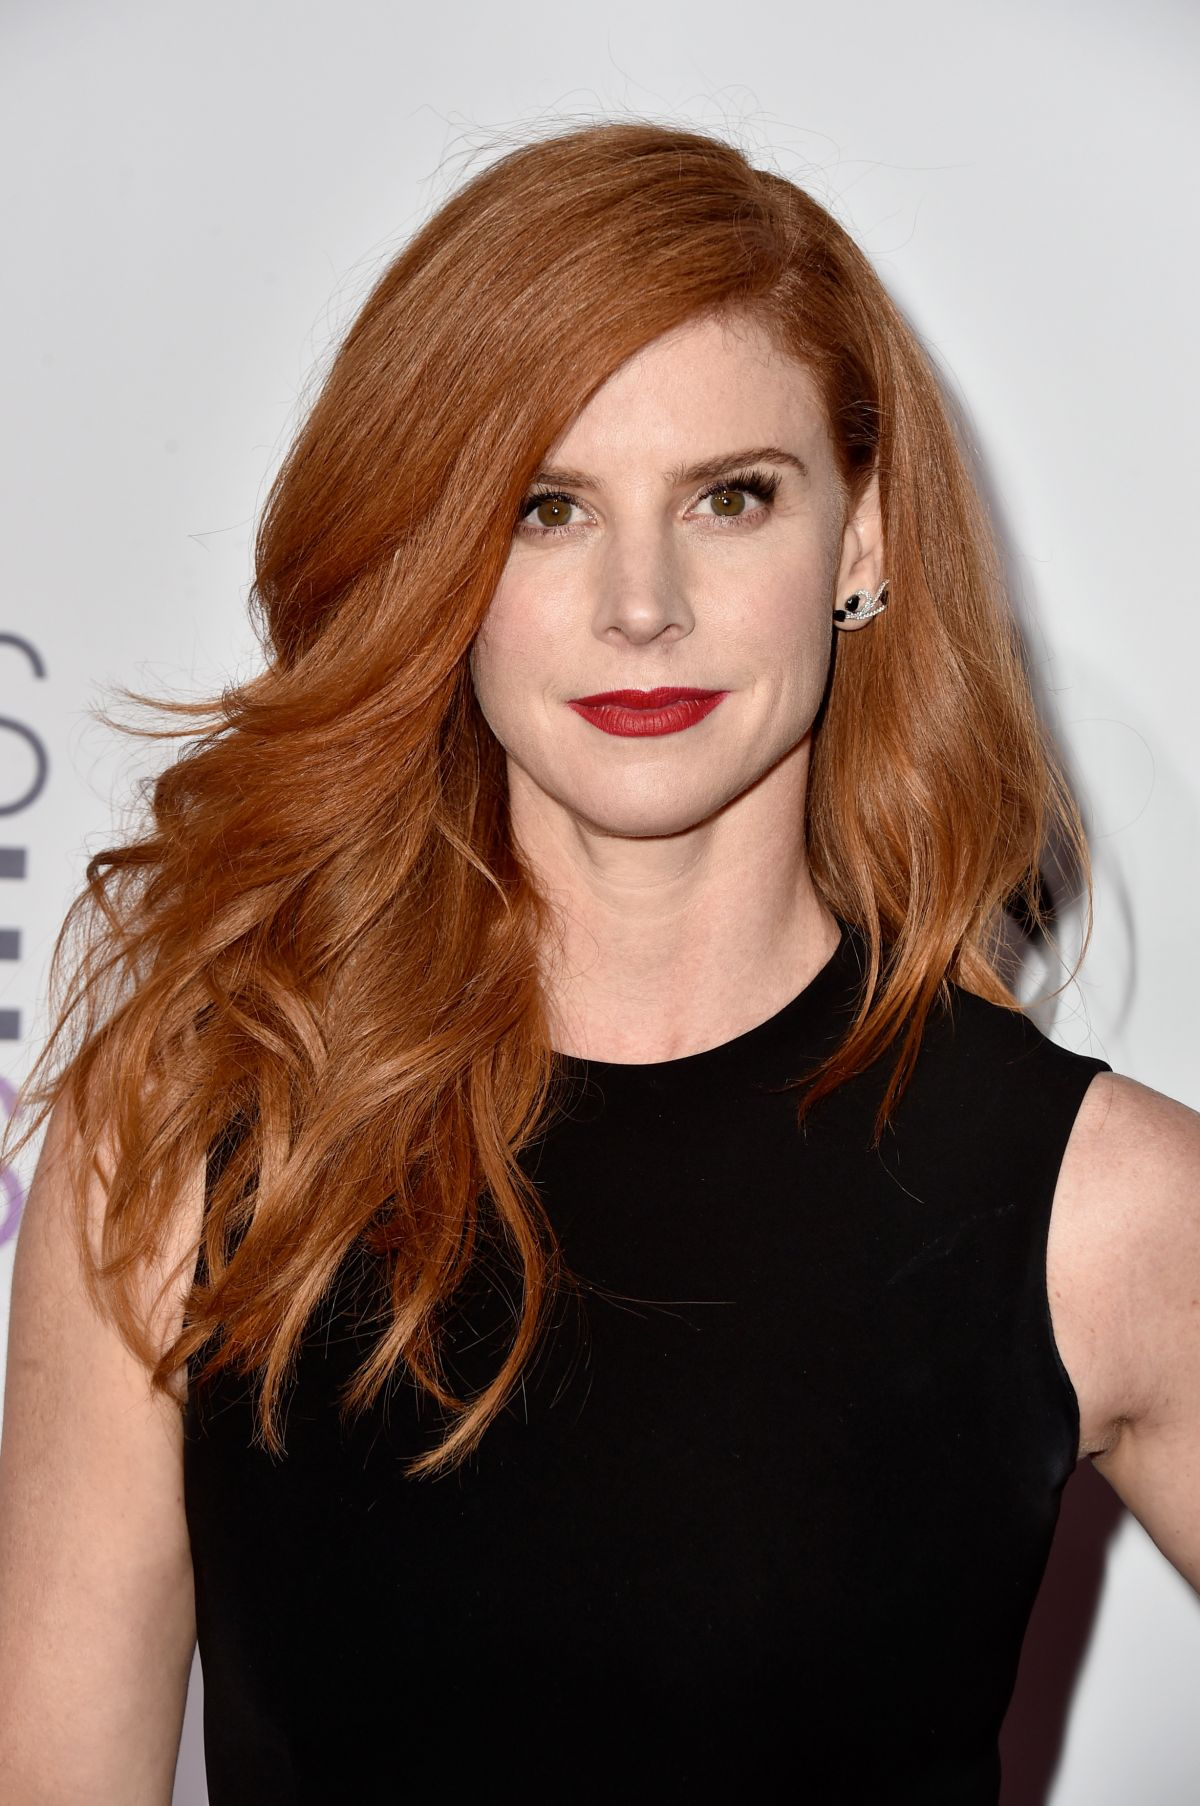 Sarah Rafferty Archives - Page 2 of 3 - HawtCelebs ...